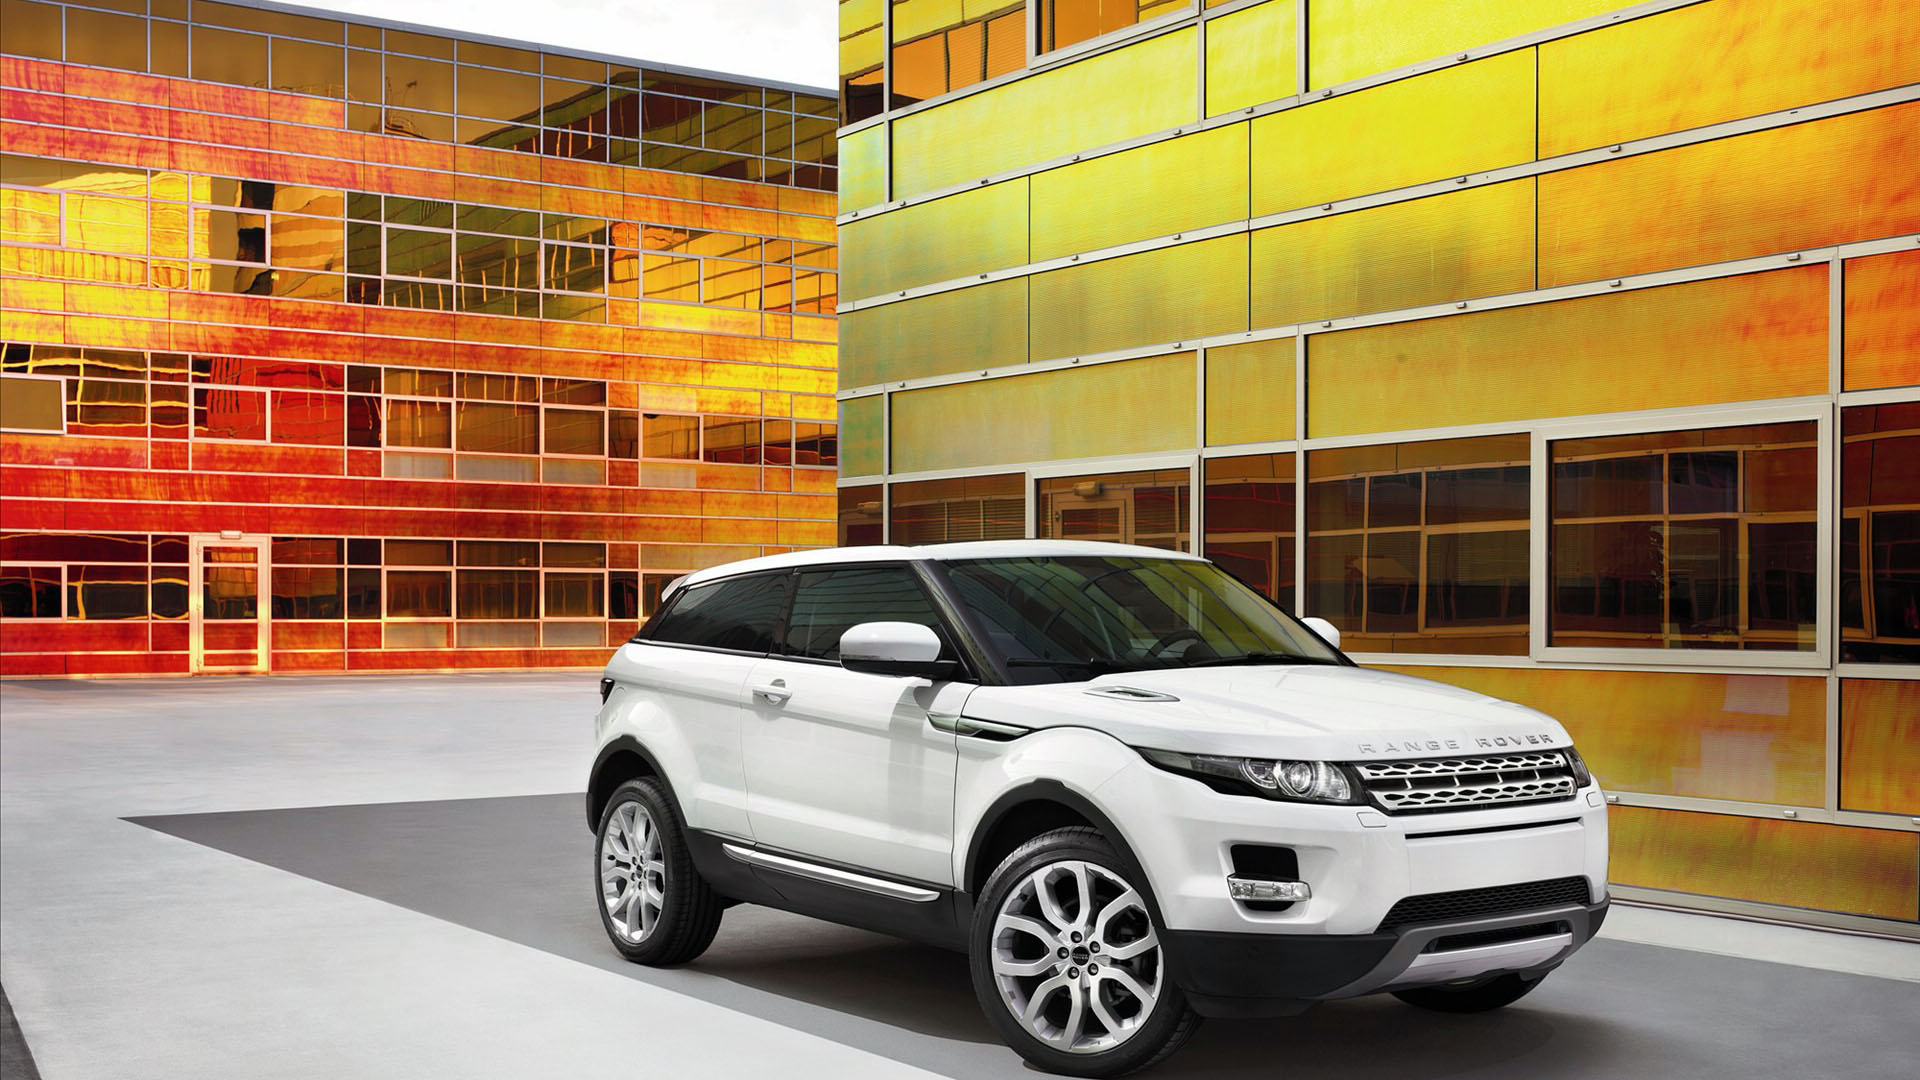 2011  Land Rover  Range Rover  Evoque  HD Wallpaper